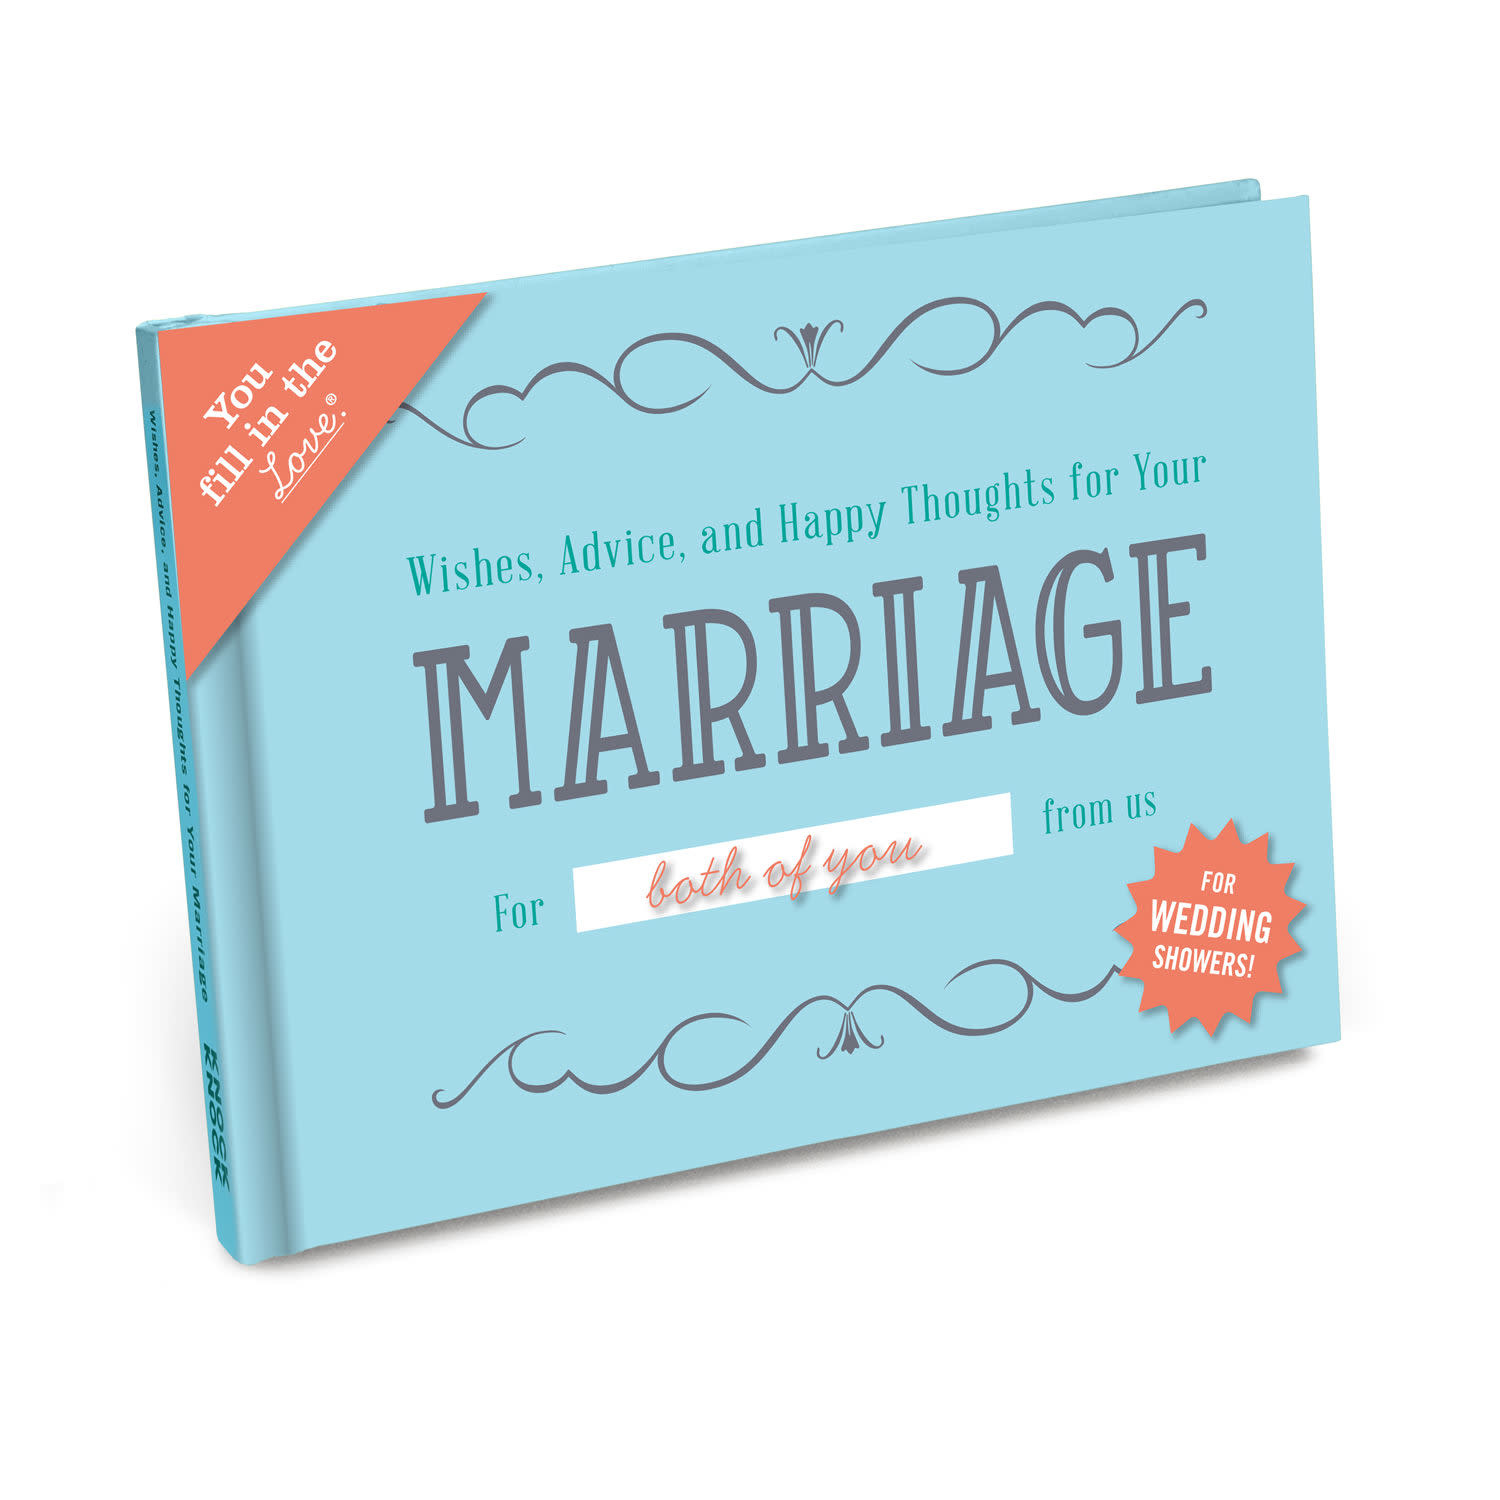 Wishes, Advice, and Happy Thoughts for Your Marriage